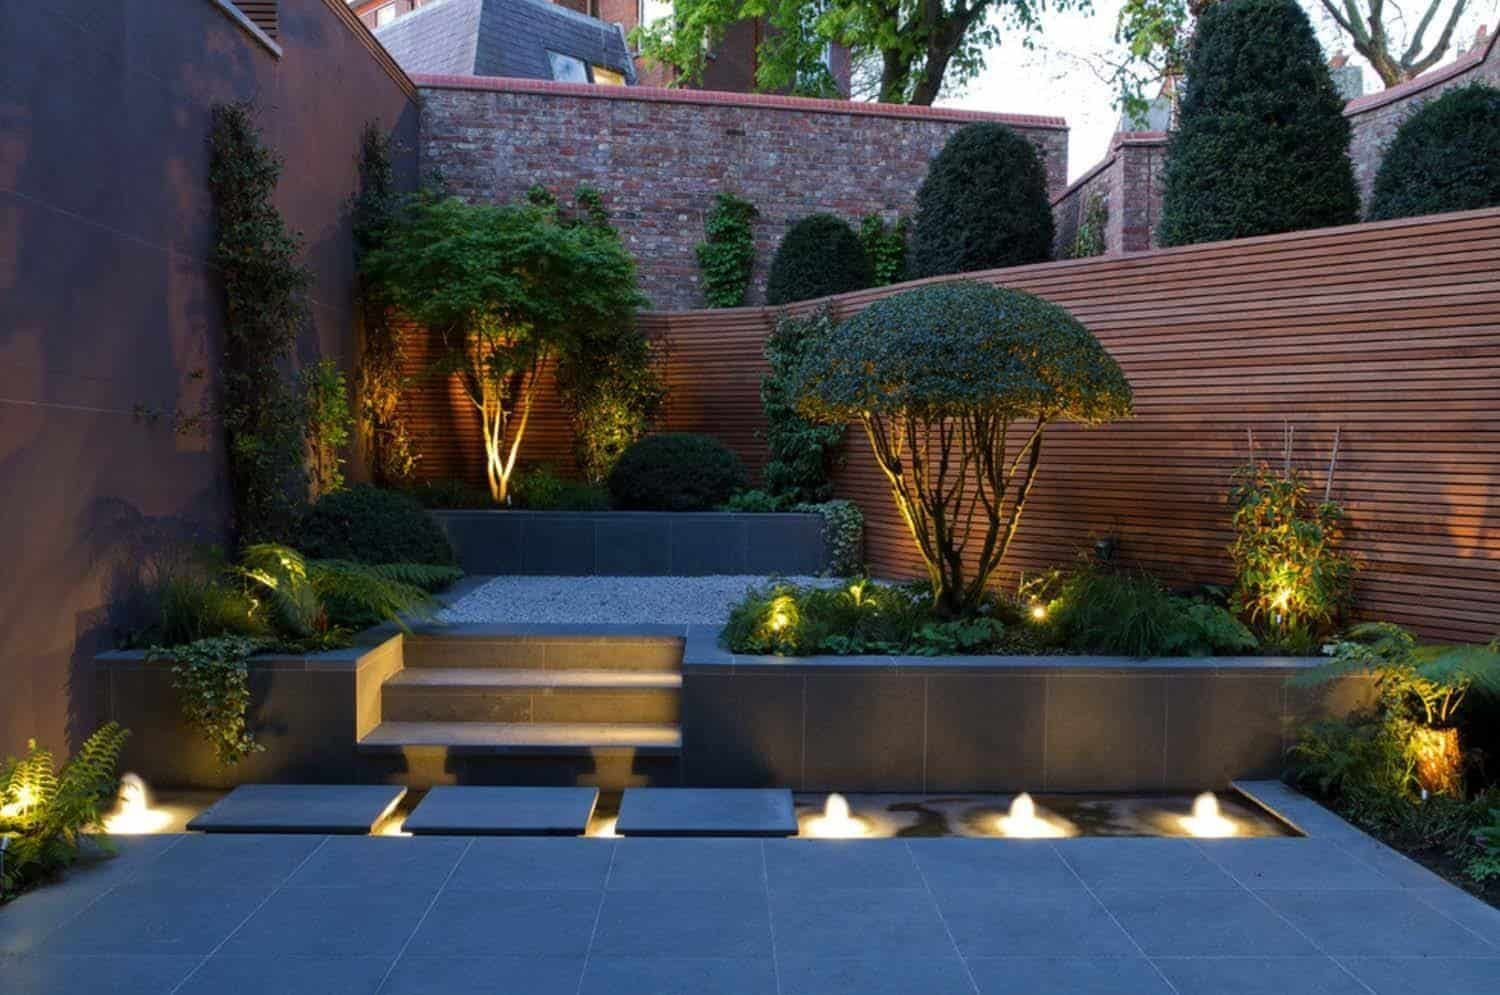 35 Modern Outdoor Patio Designs That Will Blow Your Mind Outdoor Landscape Design Small Backyard Landscaping Modern Outdoor Patio